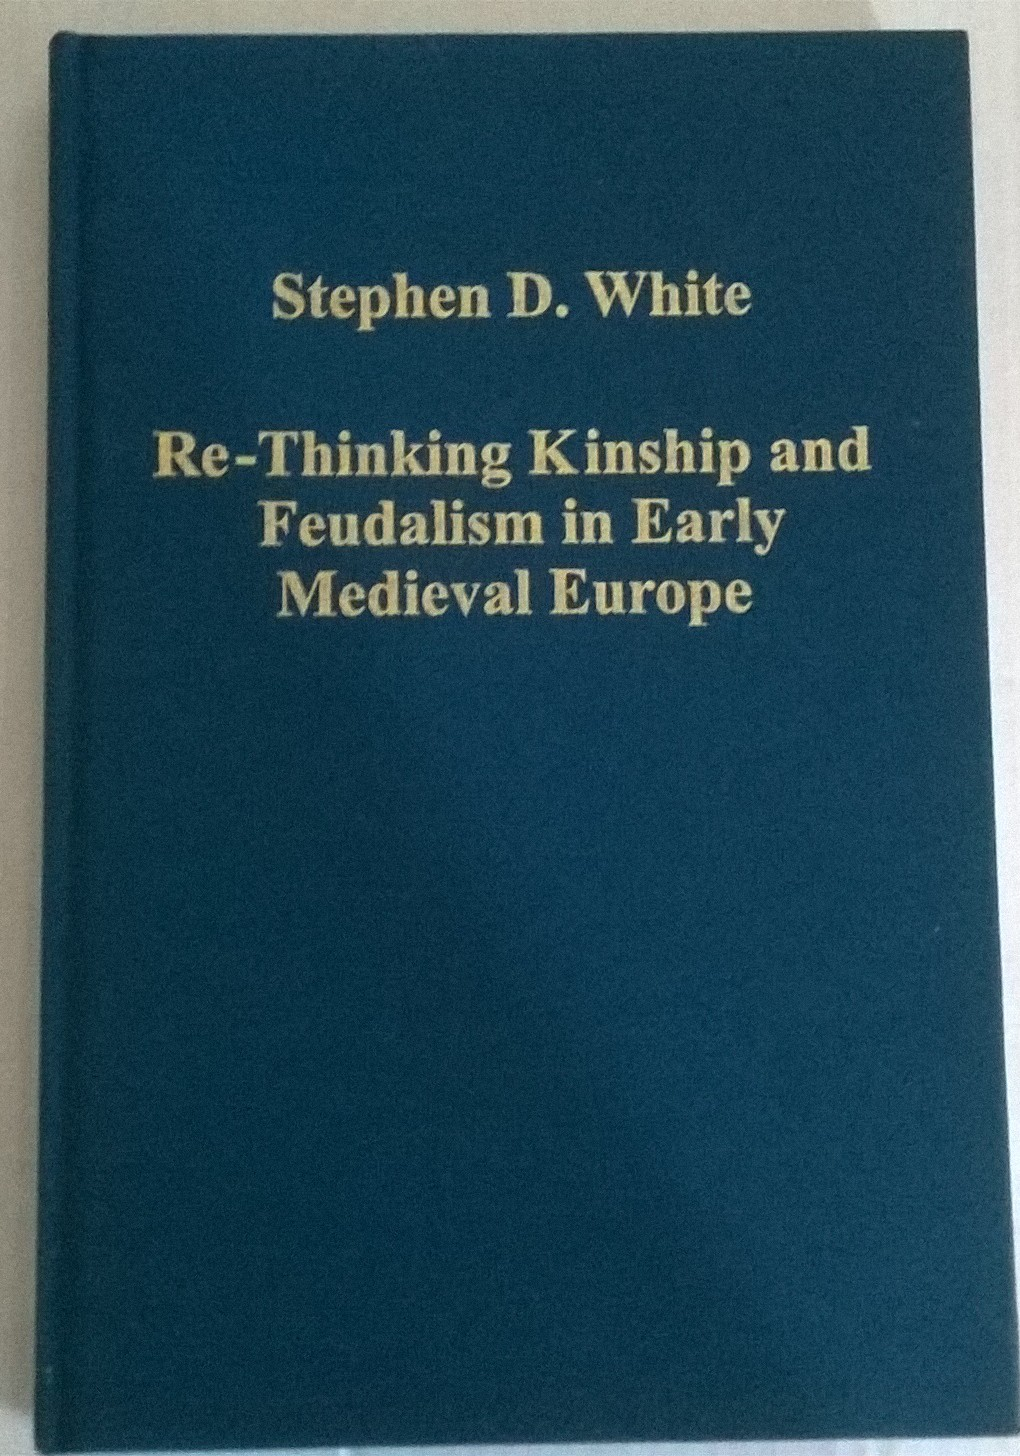 Image for Re-Thinking Kinship and Feudalism in Early Medieval Europe :